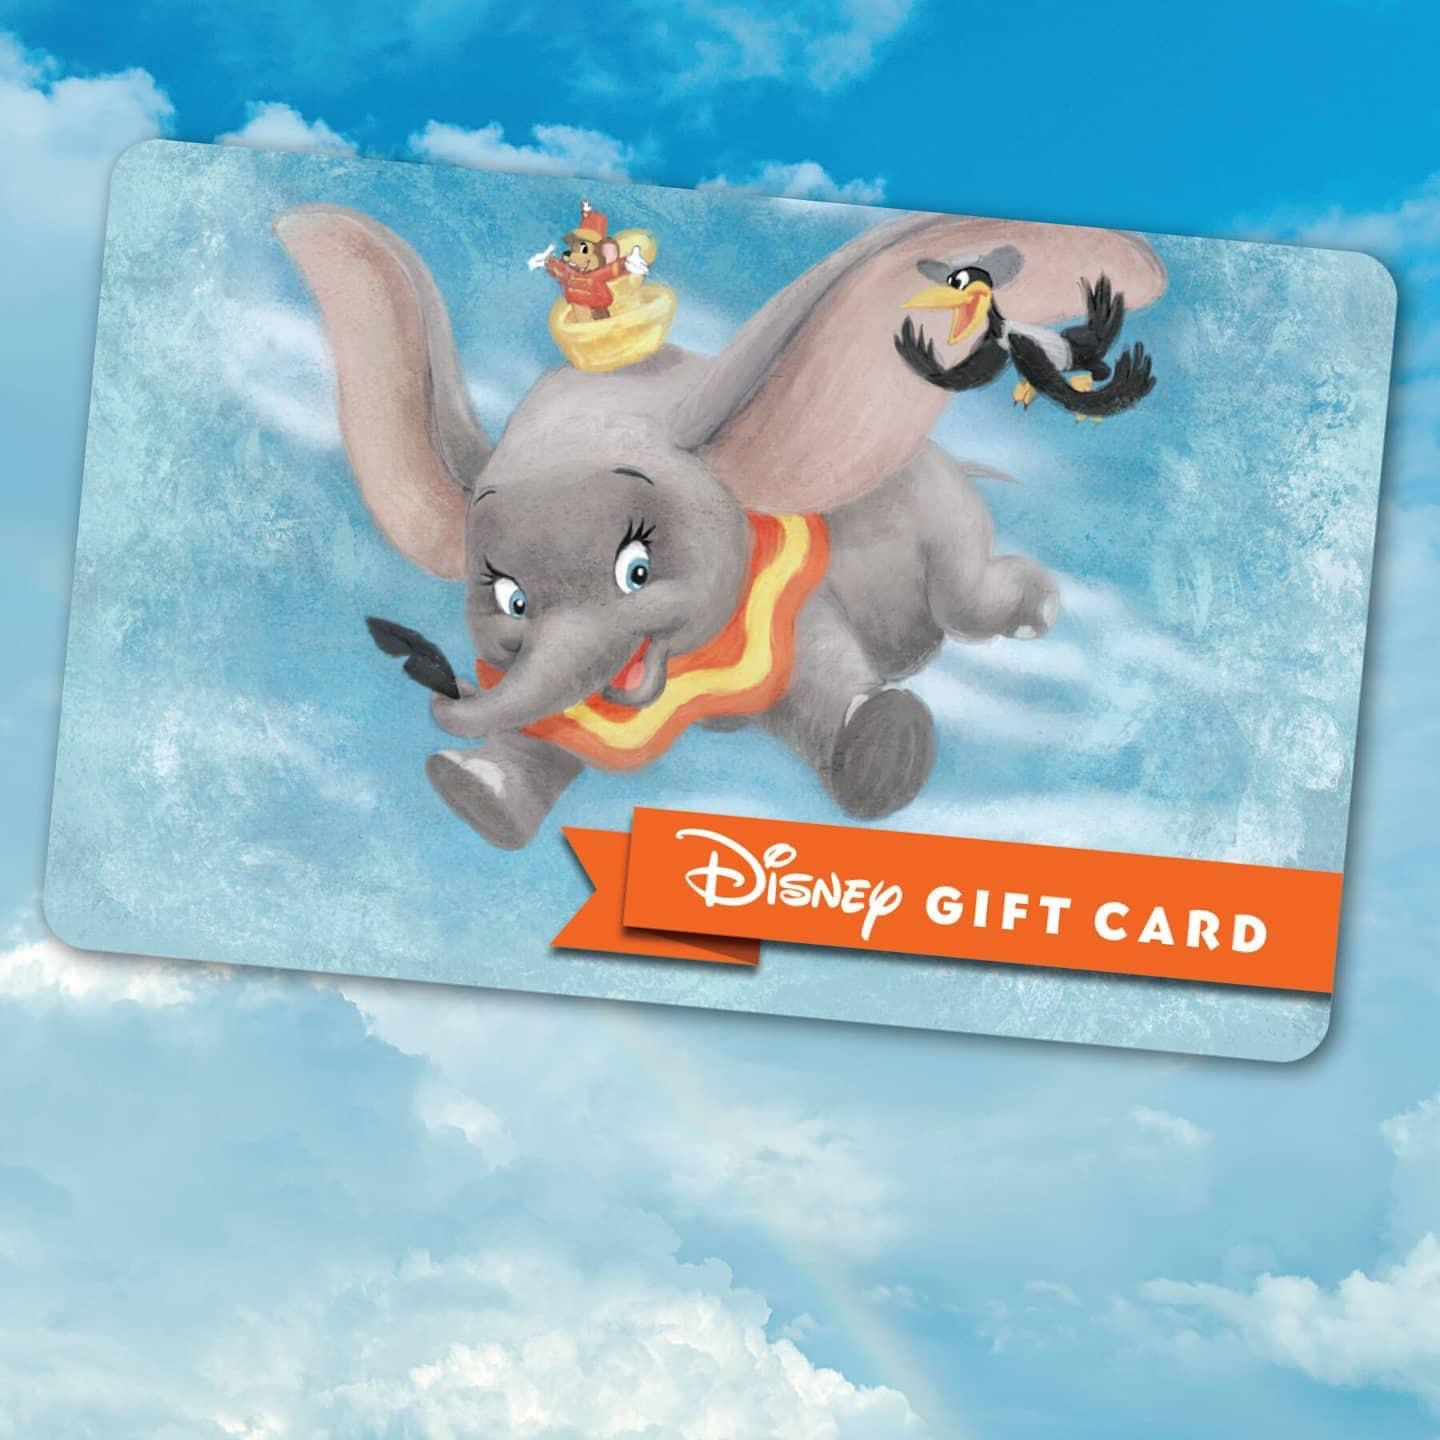 New Disney Gift Card Designs for Your Holiday Gift Giving from shopDisney! 17